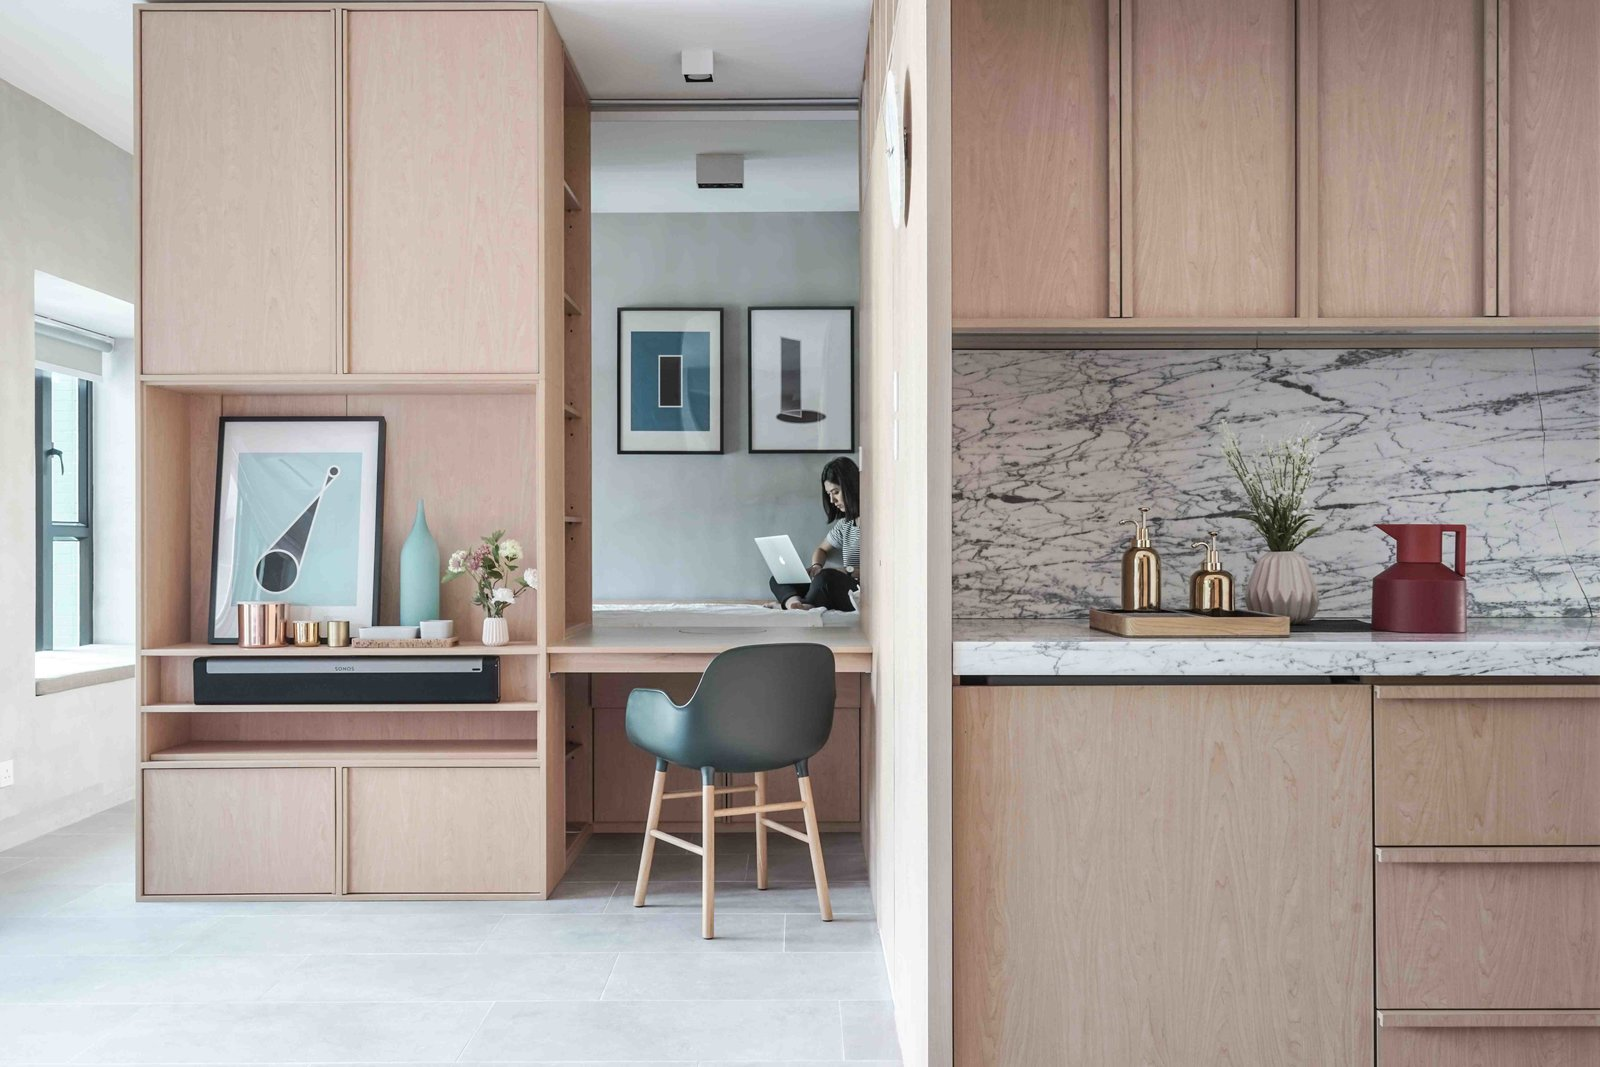 10 small apartments by a hong kong design studio that are less than